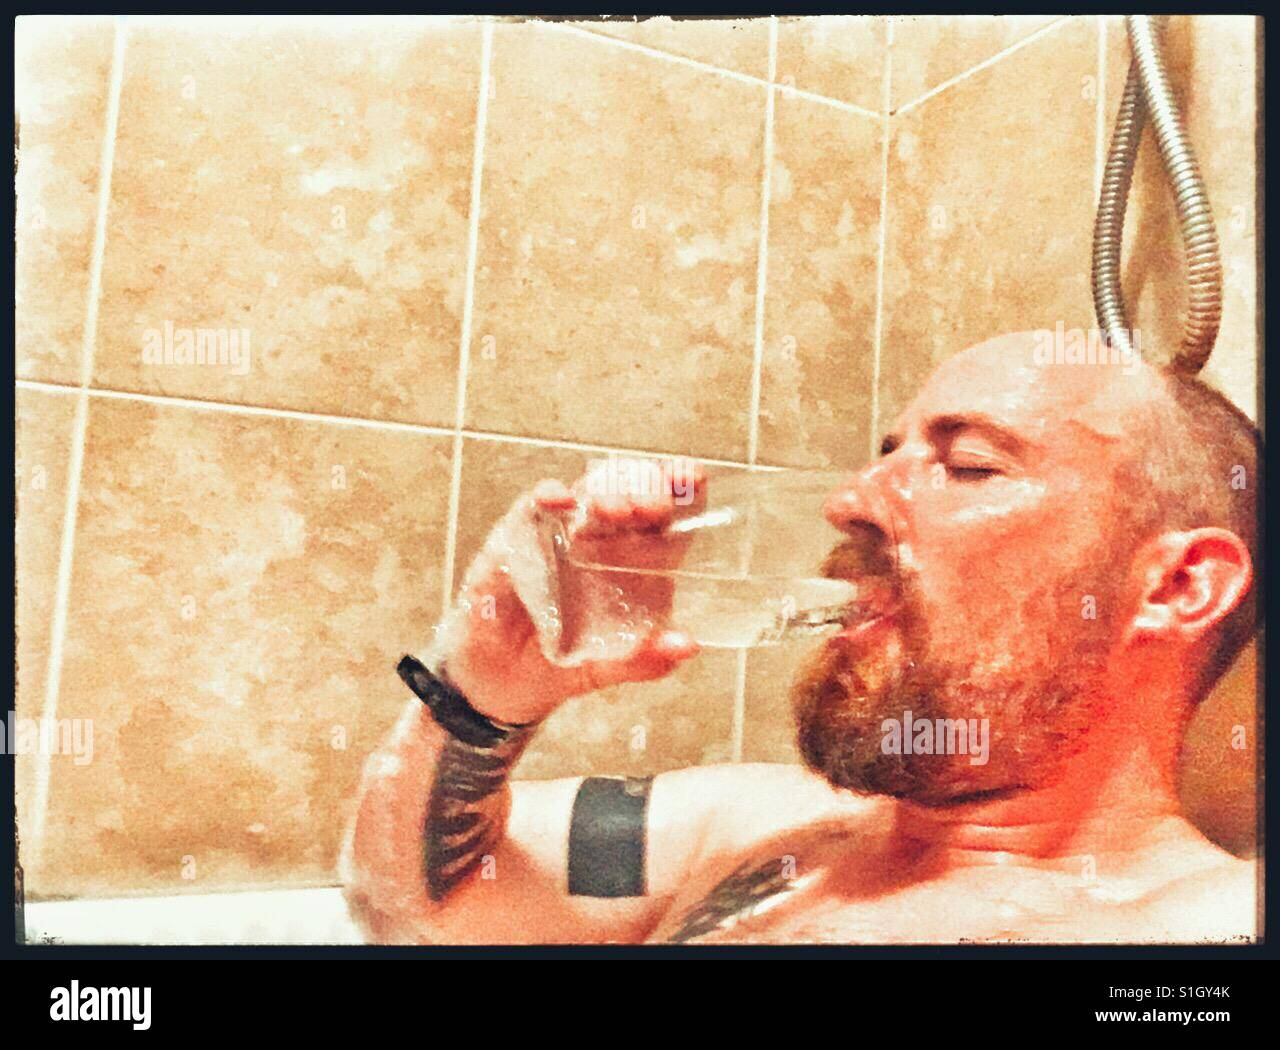 Man drinking a pint of water while immersed in a very hot bath. - Stock Image